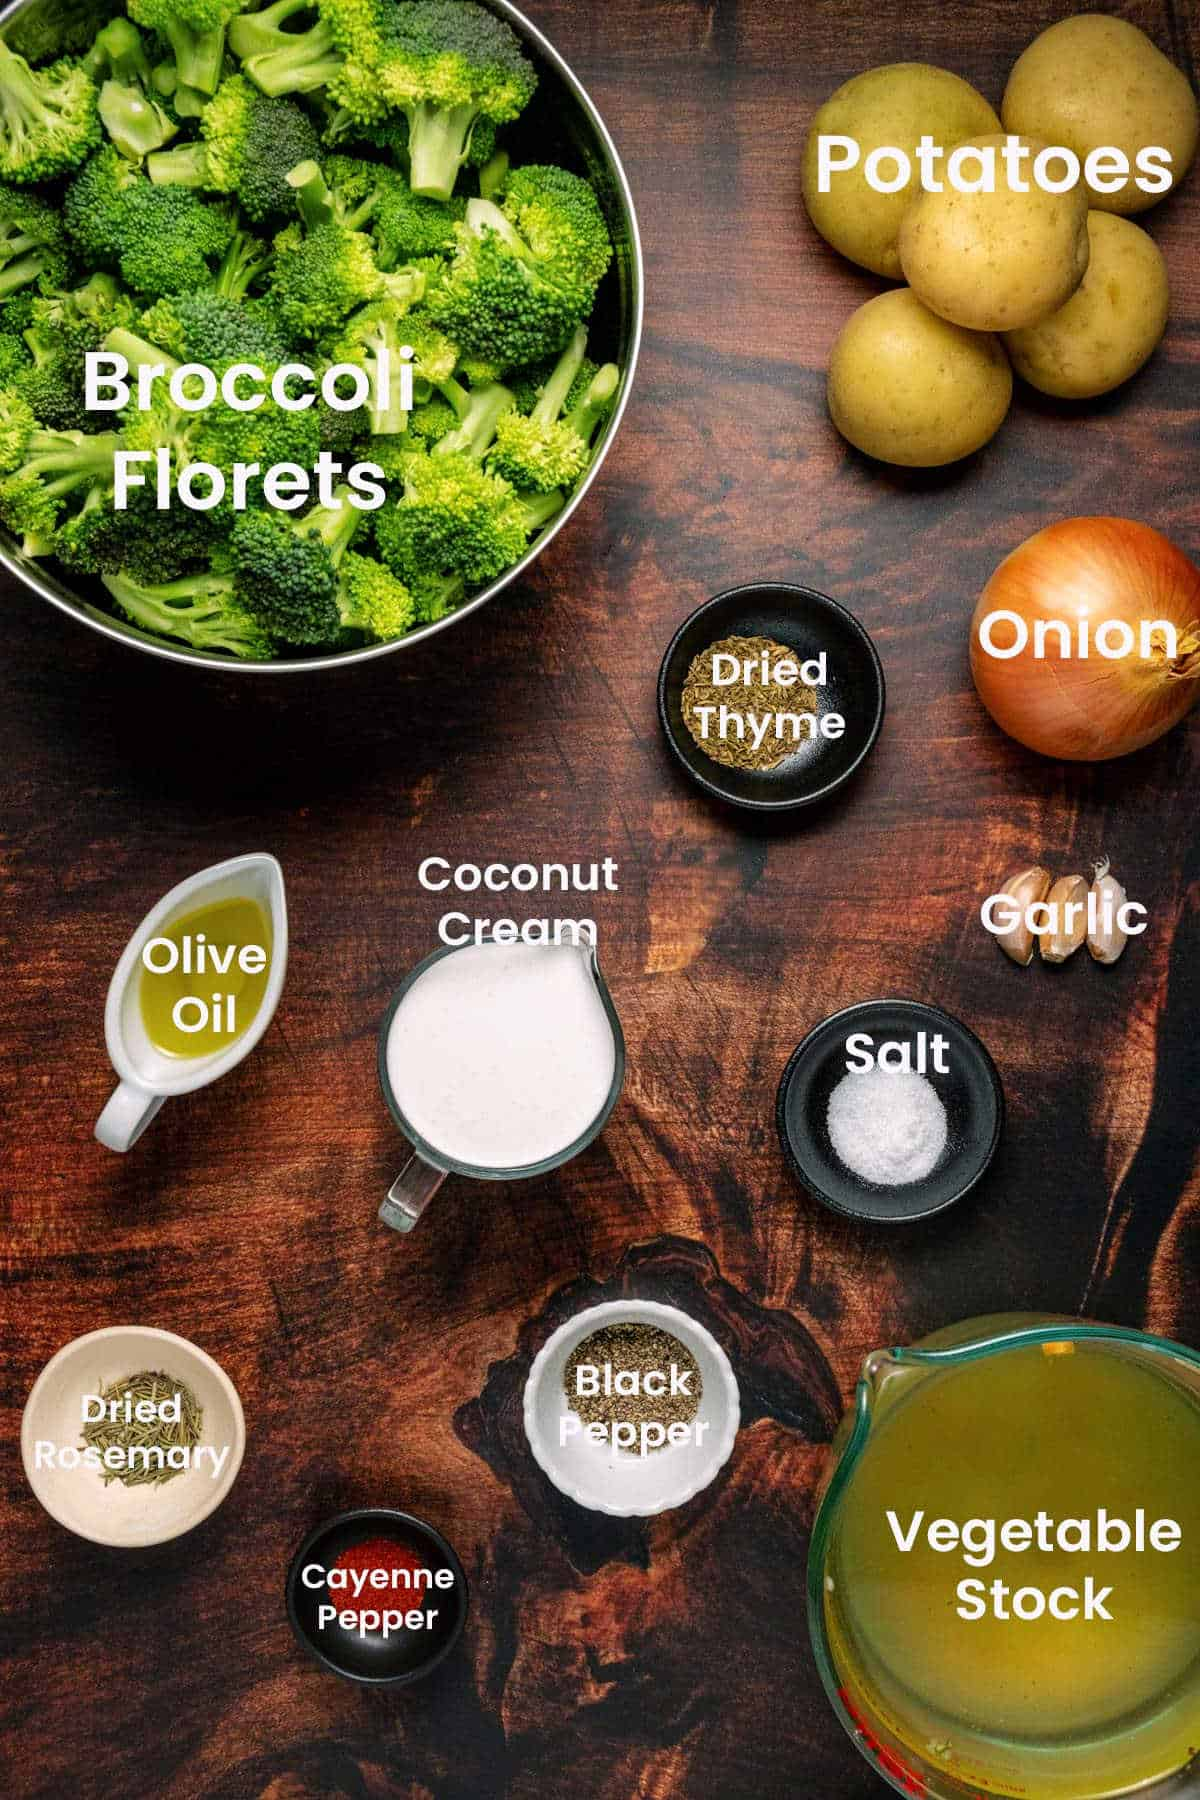 Photo of ingredients needed to make vegan broccoli soup.